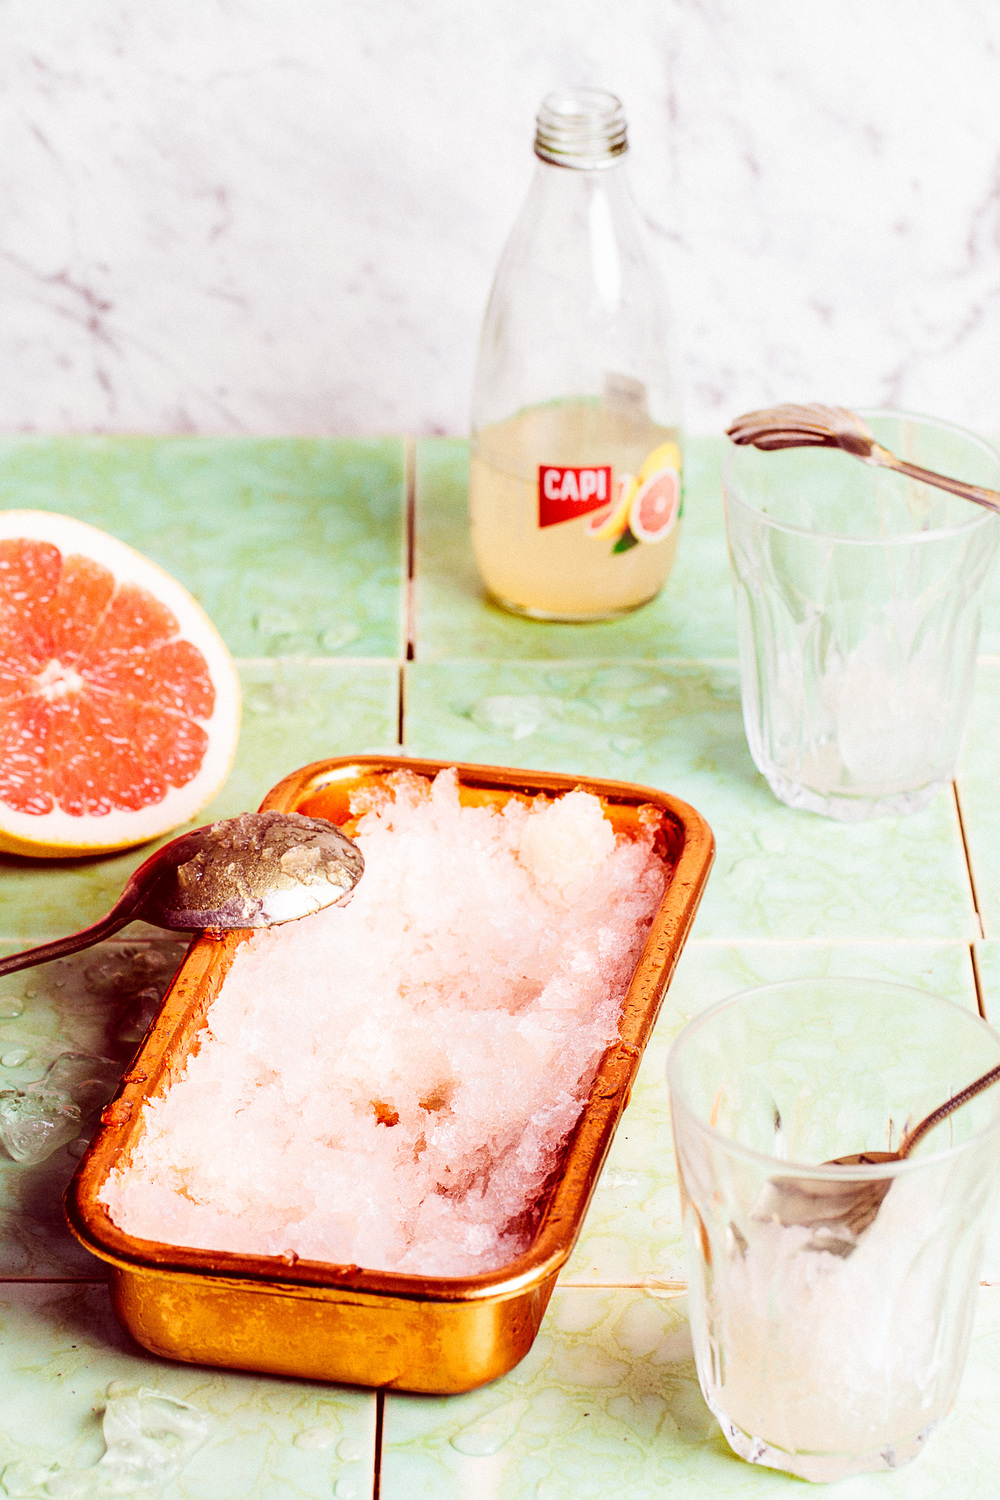 Grapefruit Granita, CAPI grapefruit sparkling soda. Recipe and styling by Cle-ann, photo by Hugh Adams.